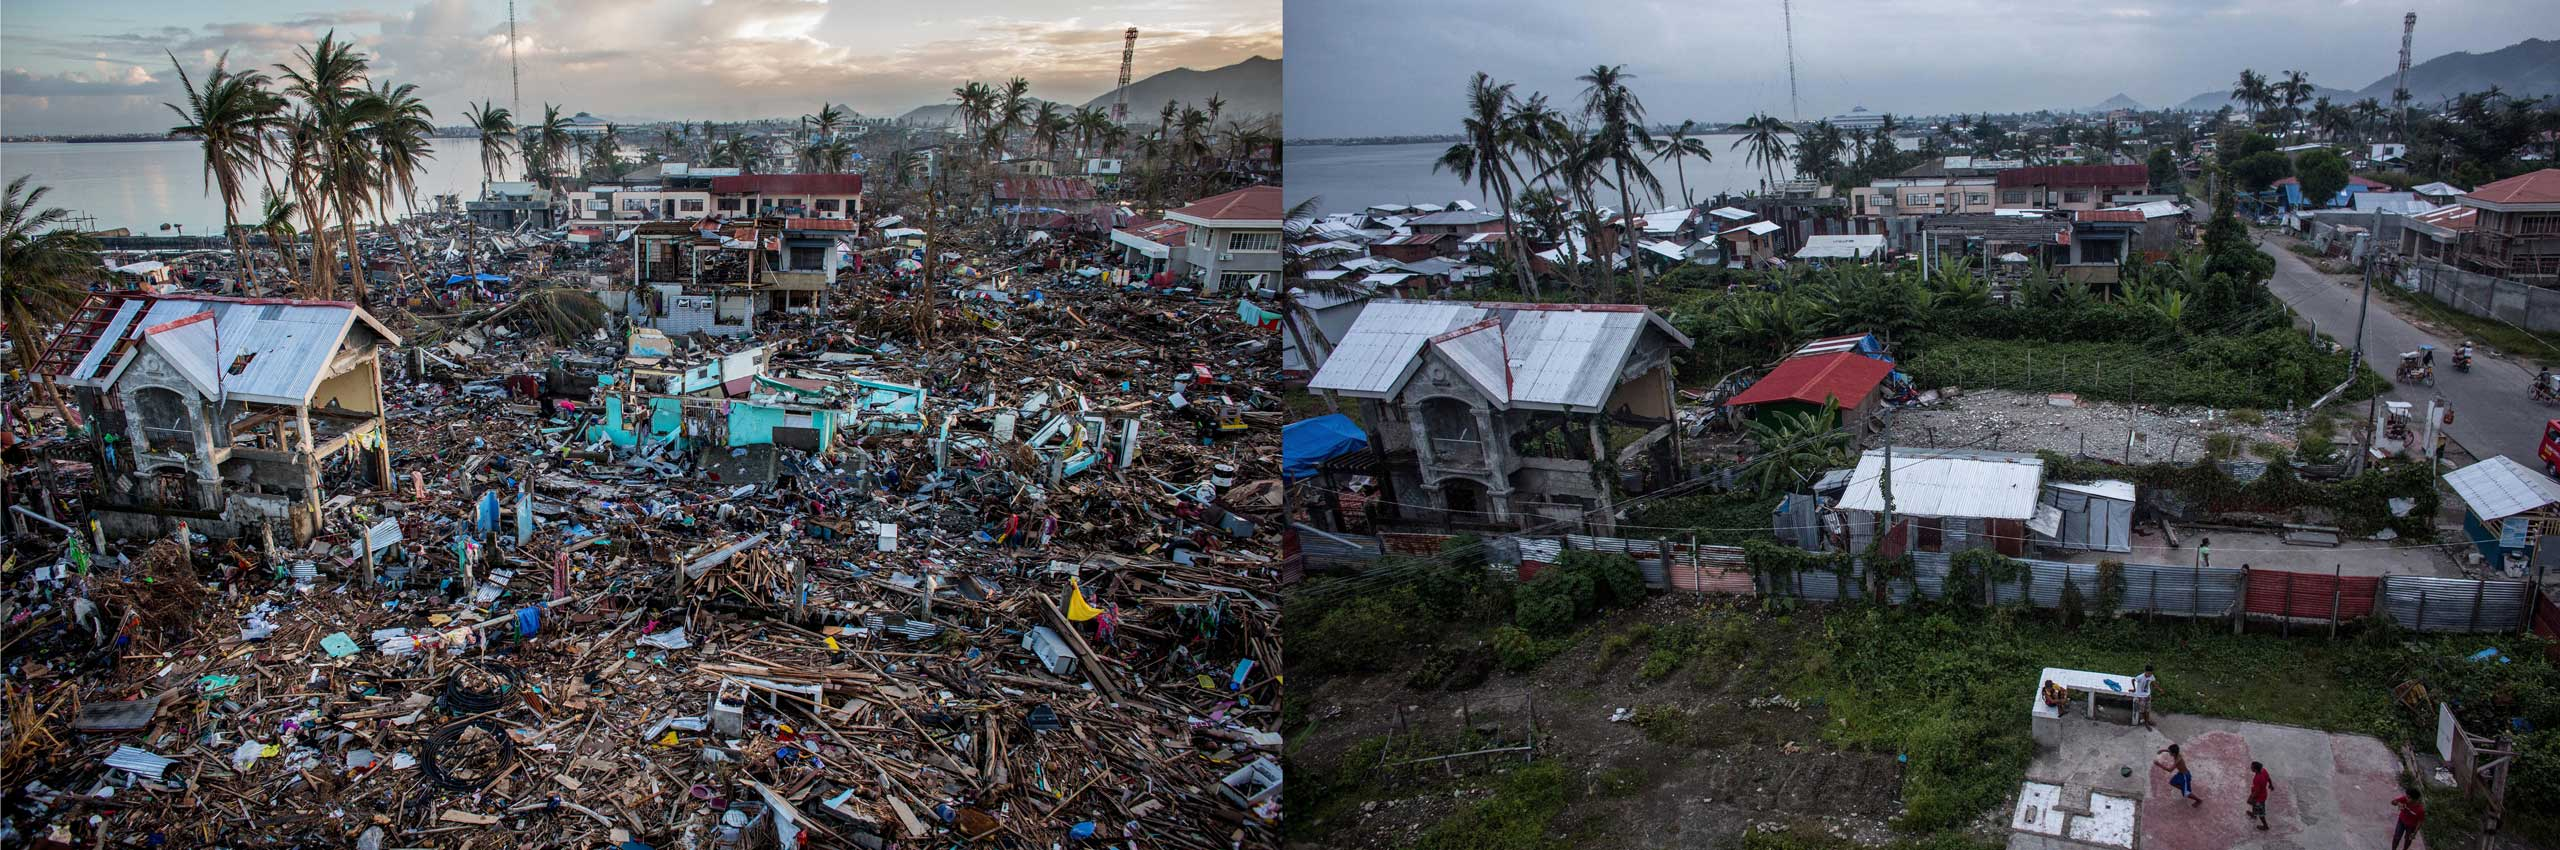 Before: A general view of the destroyed coastline in Tacloban City on Nov. 17, 2013 in Leyte, Philippines.After: View overlooking Magallanes district one year after Typhoon Haiyan on Nov. 4, 2014.